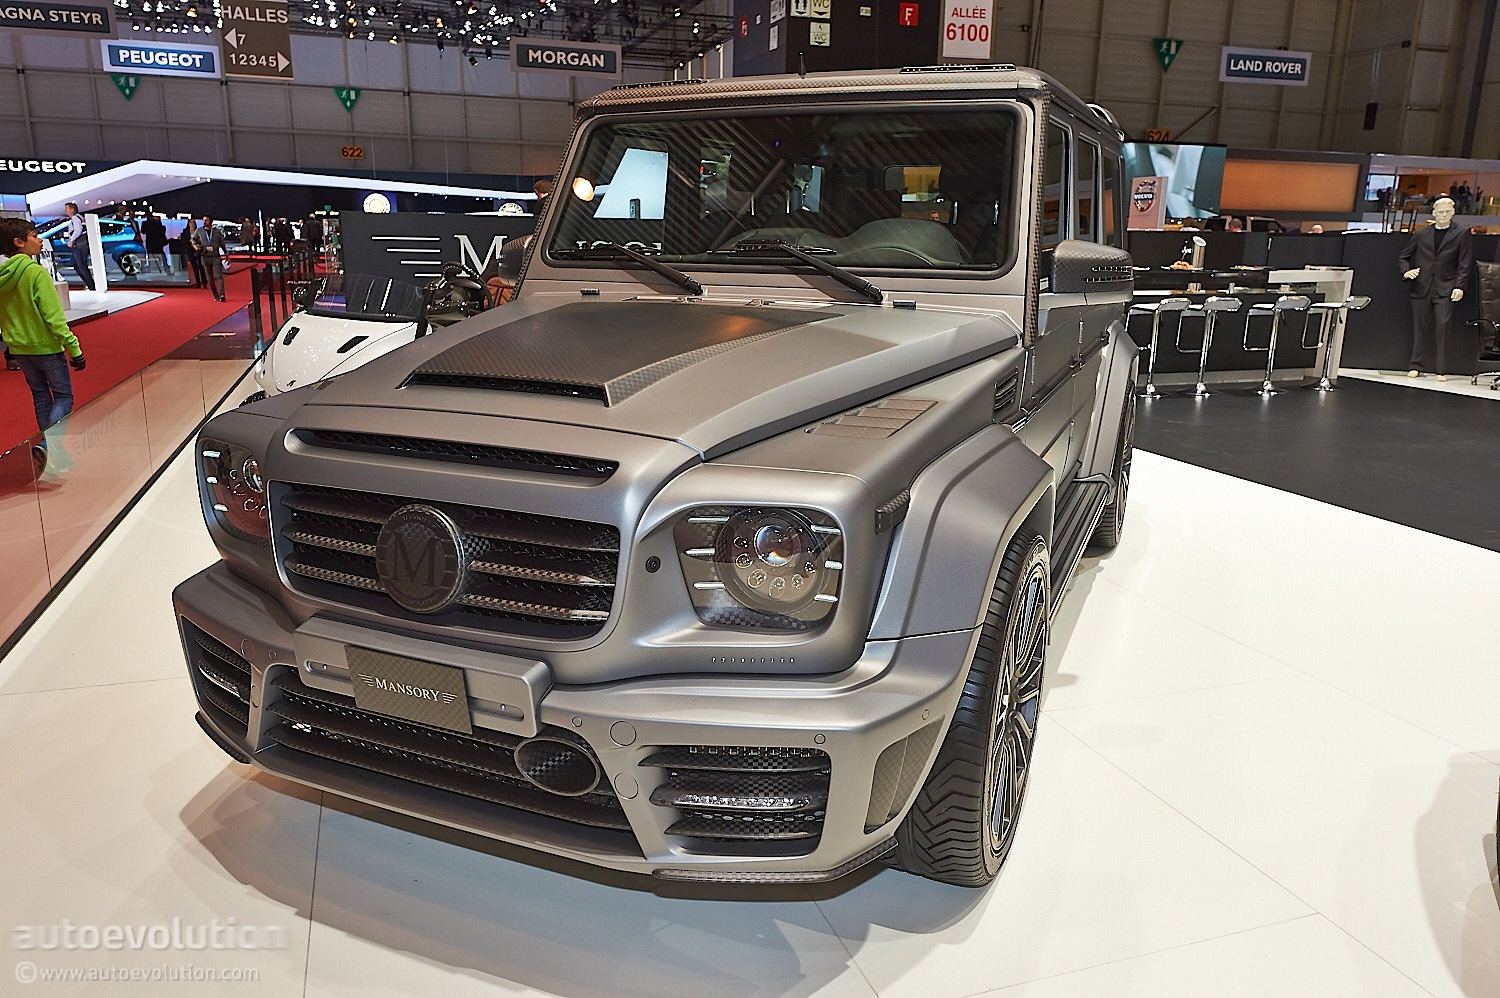 mansory-gronos-g-class-greys-out-geneva-live-photos_2.jpg